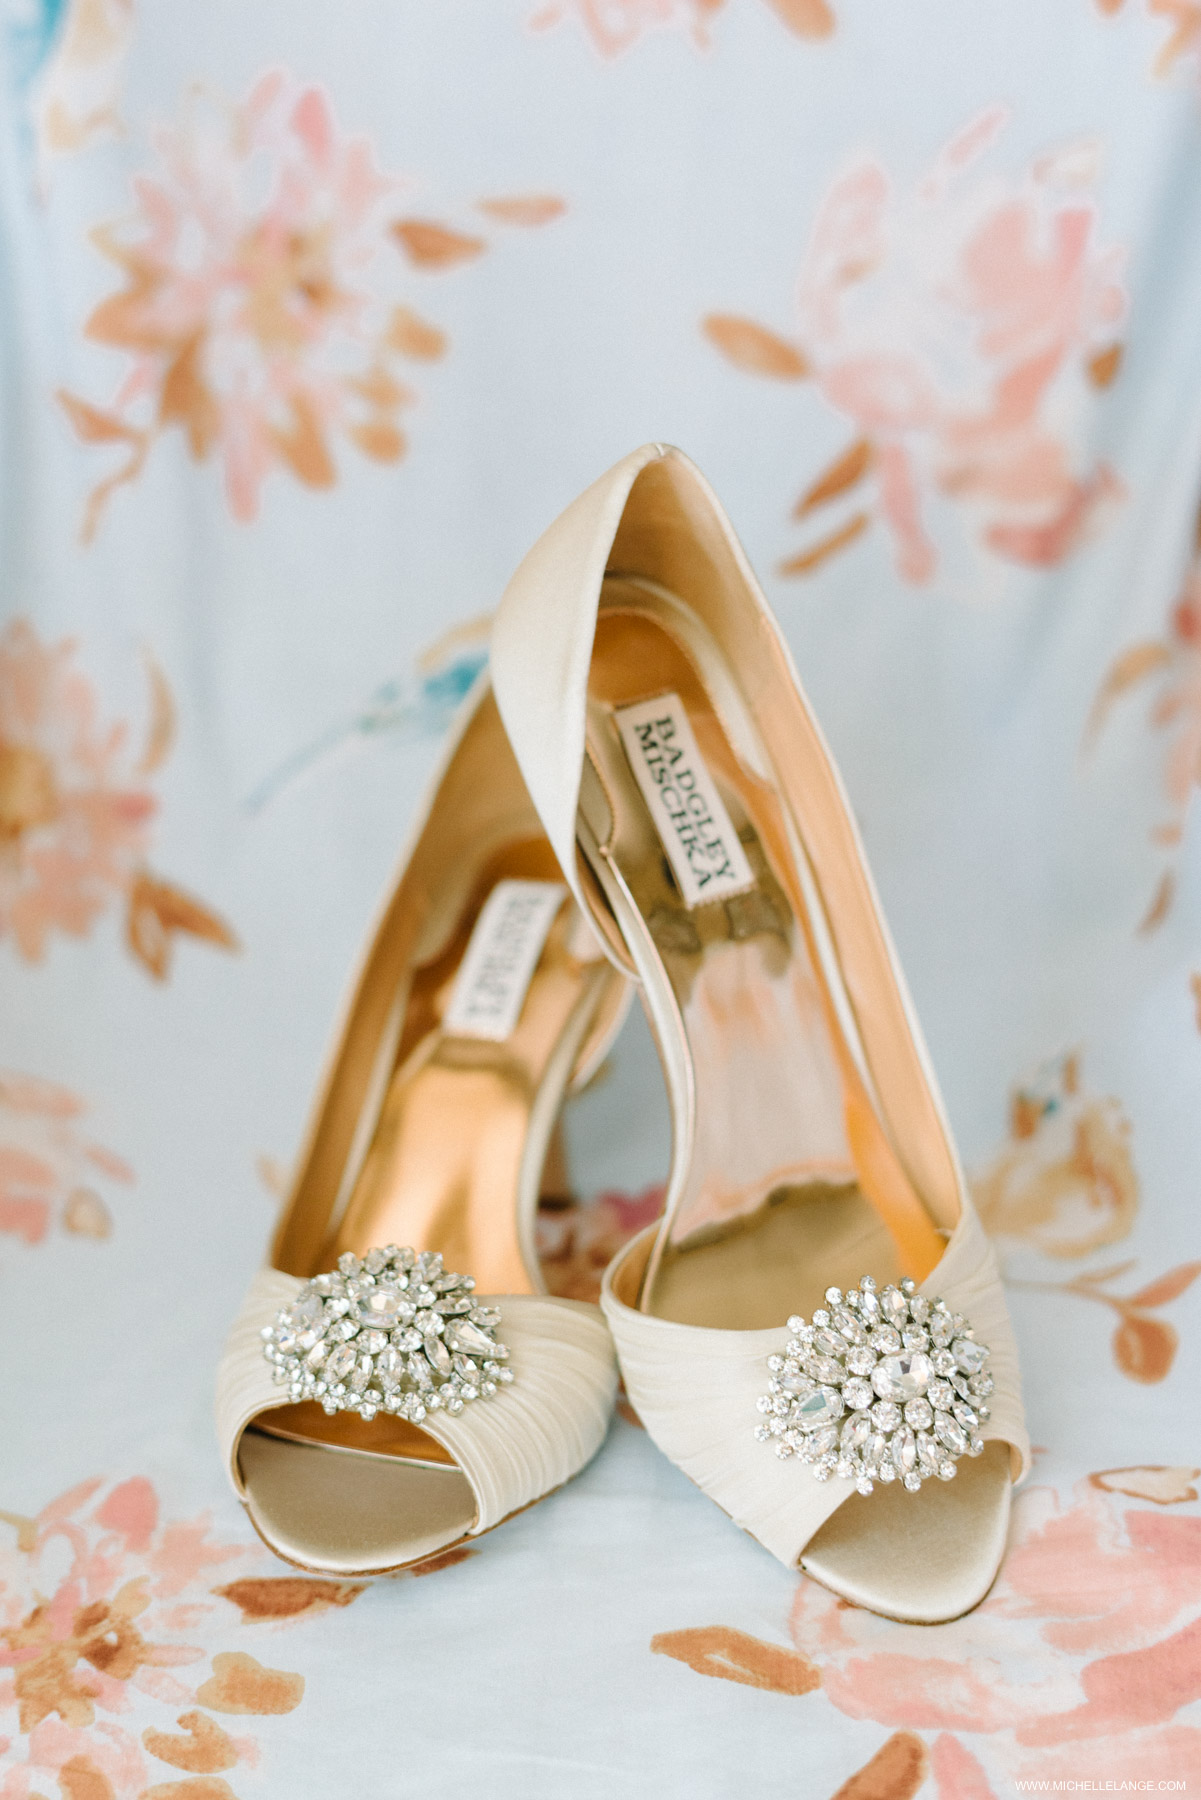 Sagamore Wedding by Michelle Lange Photography-1.jpg